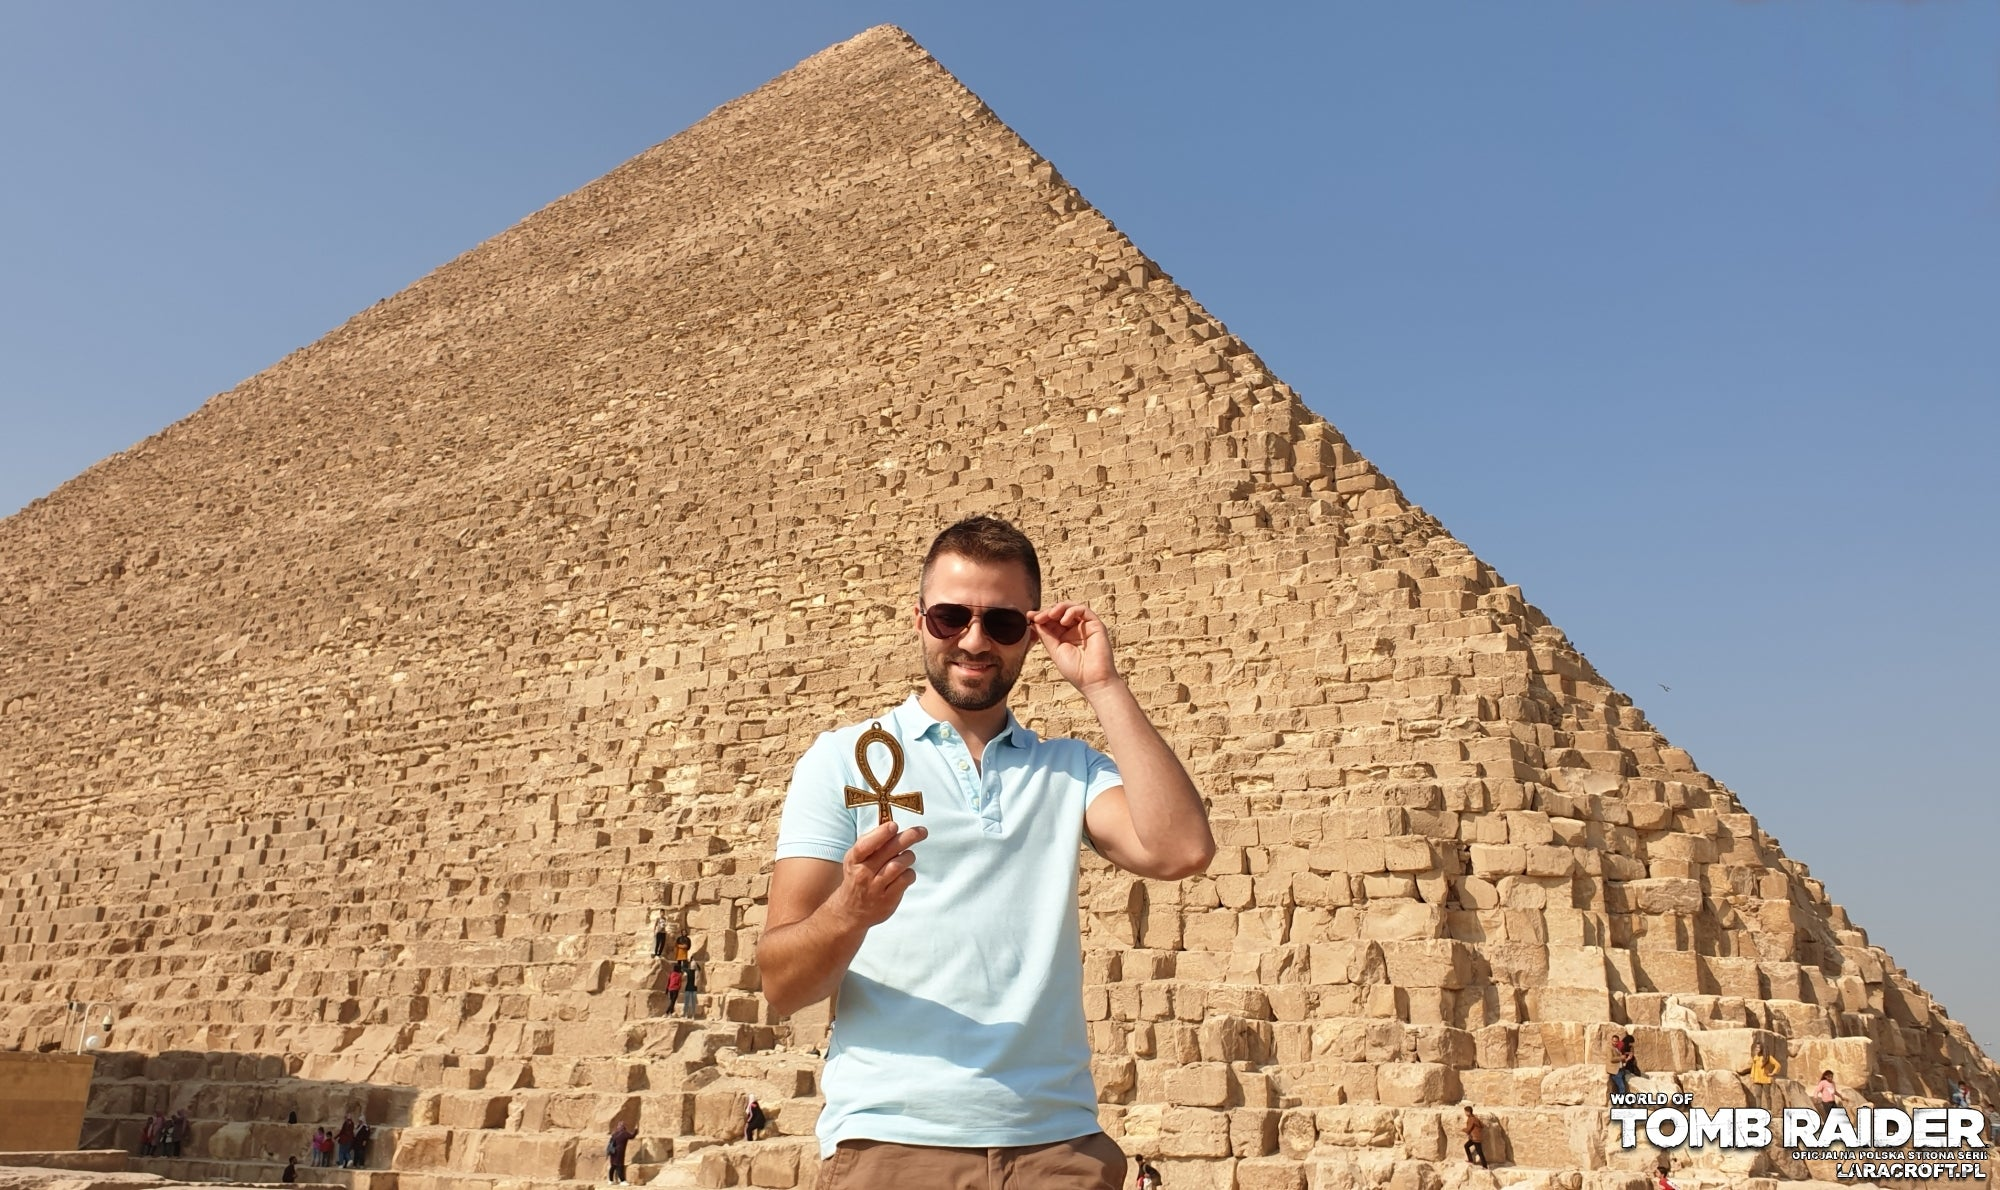 A photograph of Polish fansite webmaster Robert outside the Great Pyramid